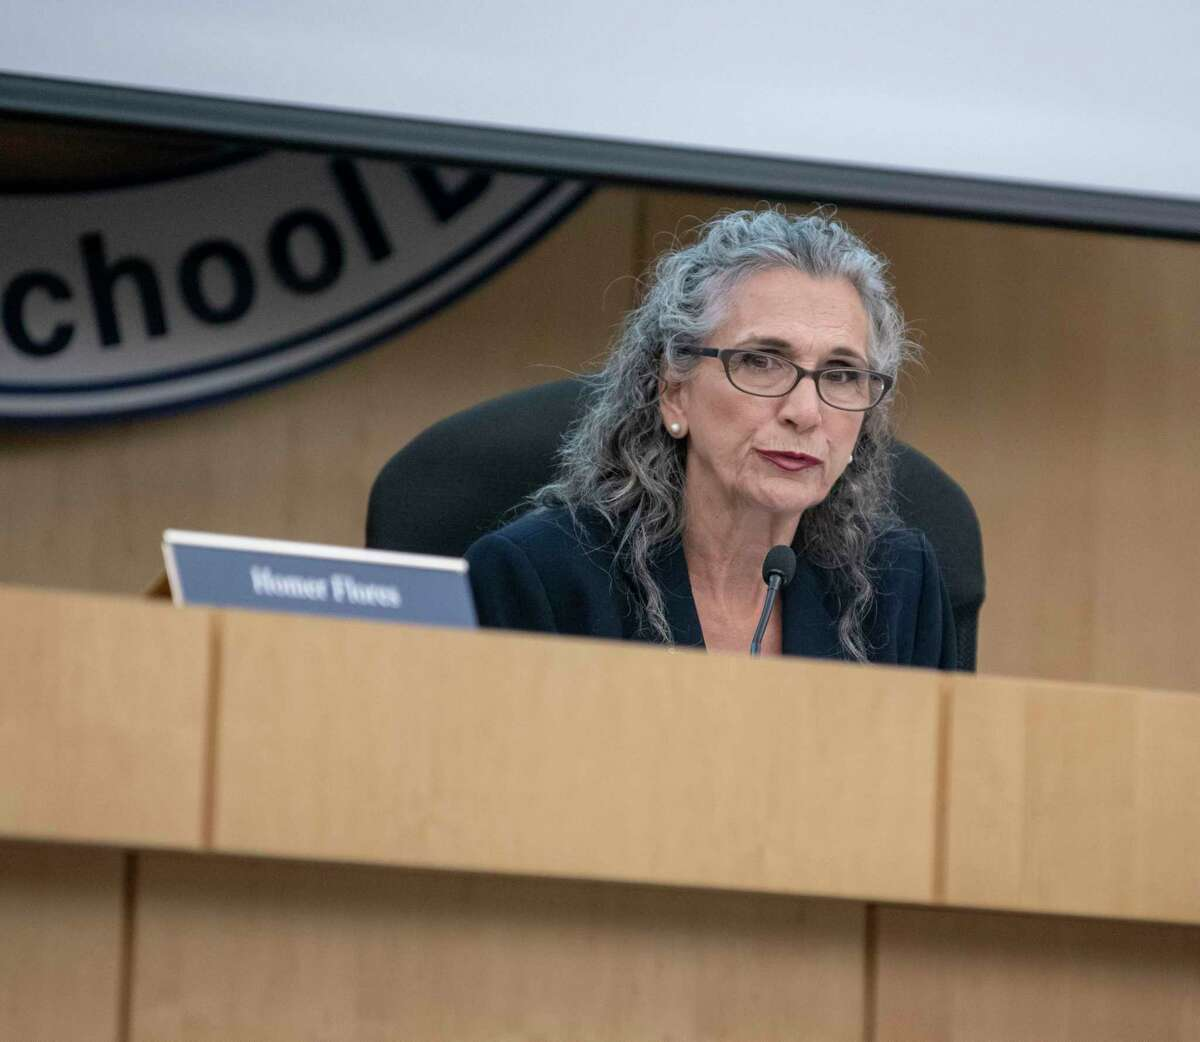 South San ISD trustee Connie Prado has been the face of dysfunction at the district, and once again, the Texas Education Agency must intervene.